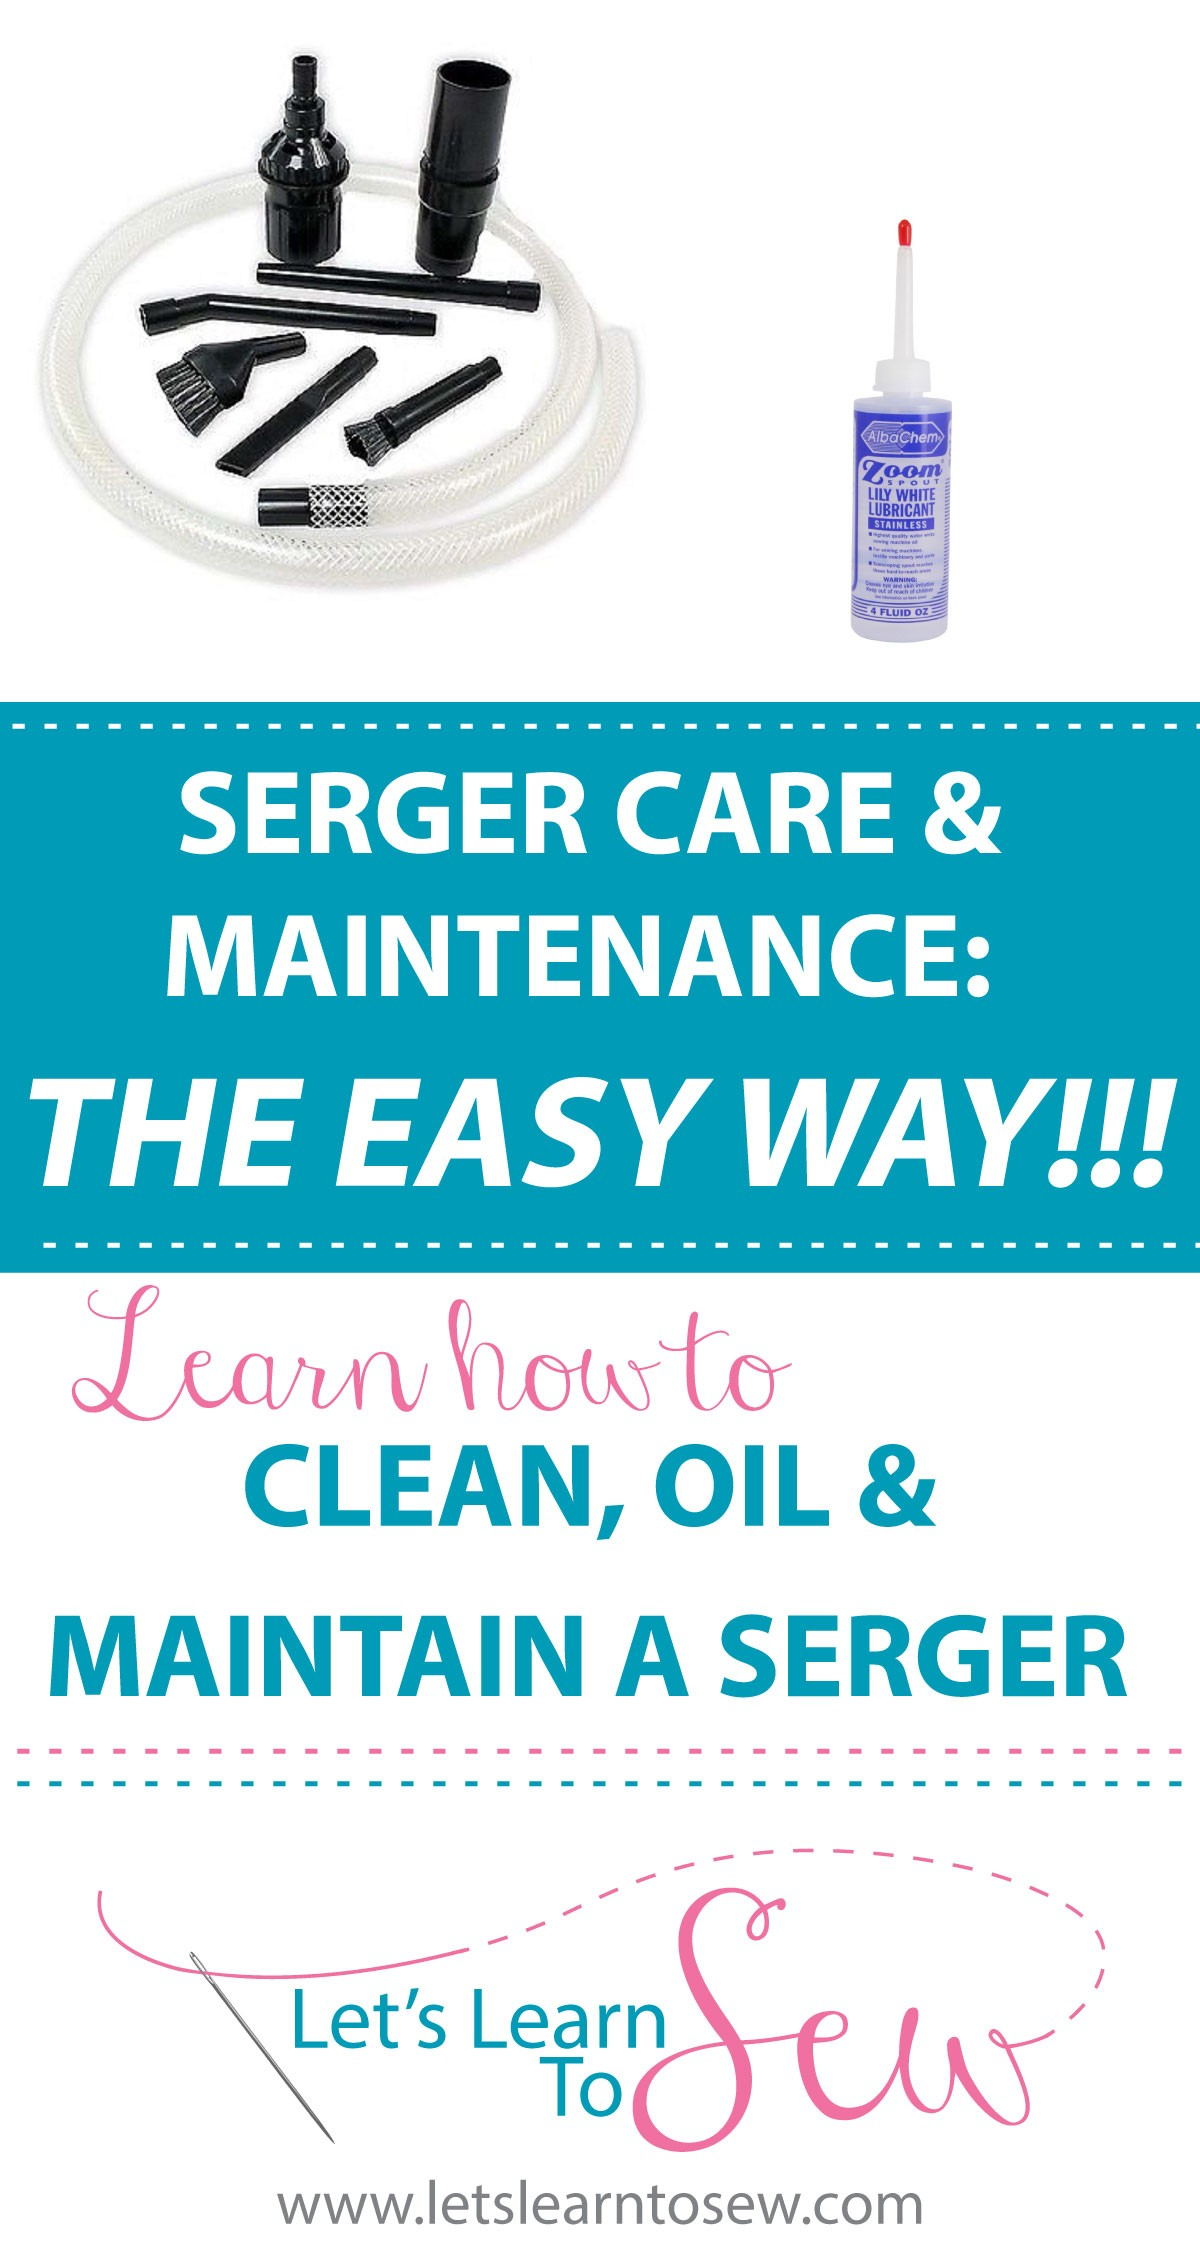 Serger Care & Maintenance: Cleaning, Oiling & More. Does your serger need a fix? Learn the essentials of serger care & maintenance